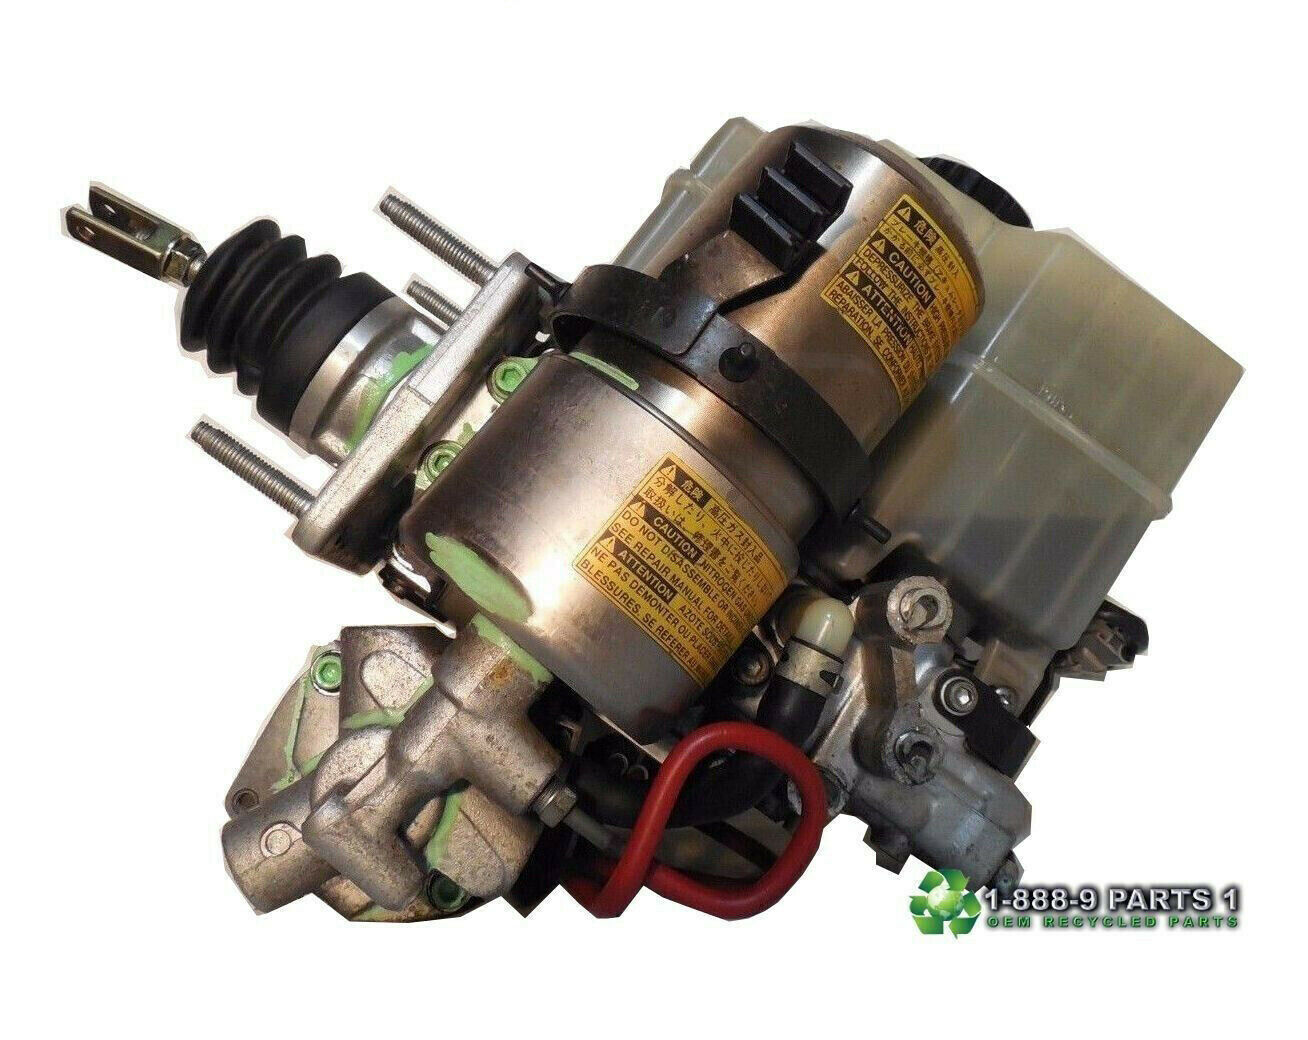 ABS Pump Master Cylinder Booster Actuator 00-02 TOYOTA LAND CRUISER LX470 $695